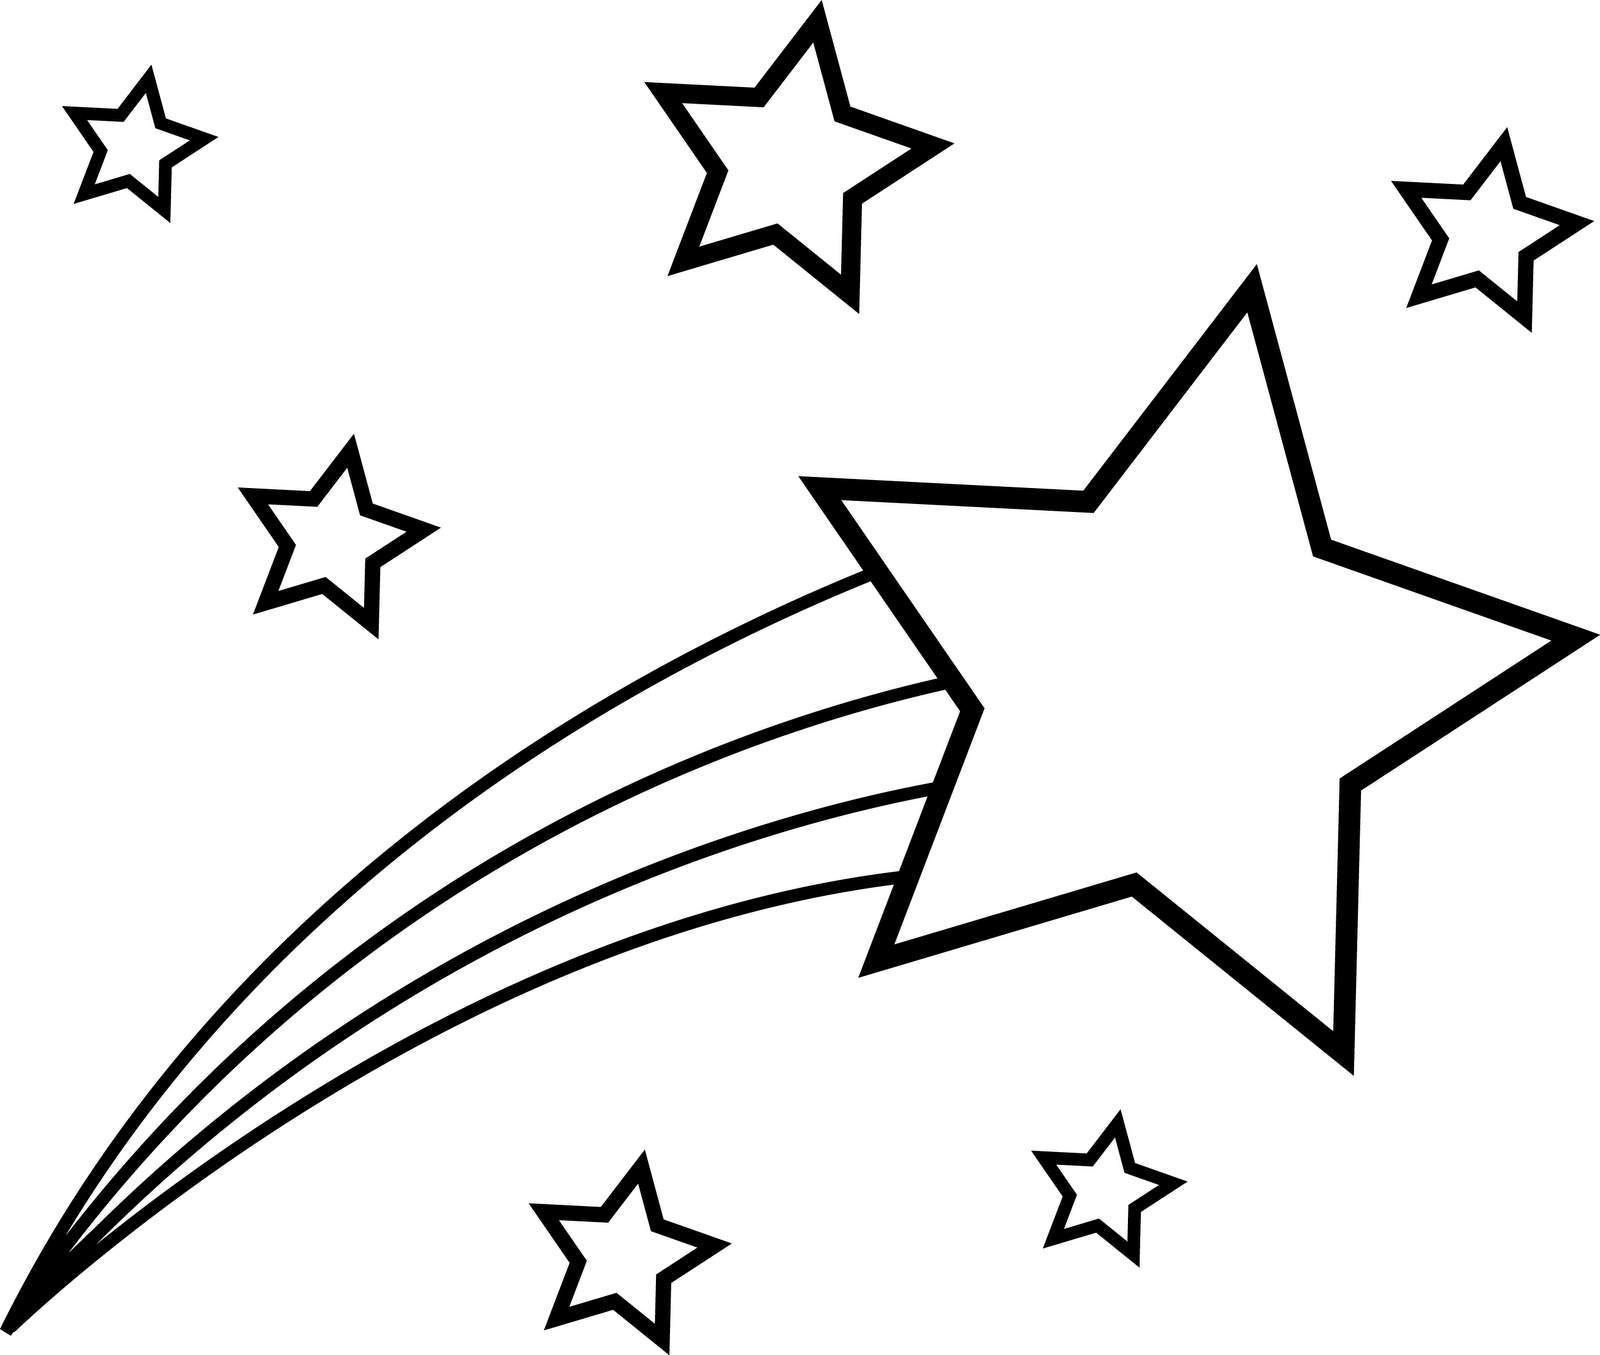 Twinkling Stars Clipart - Cliparts.co